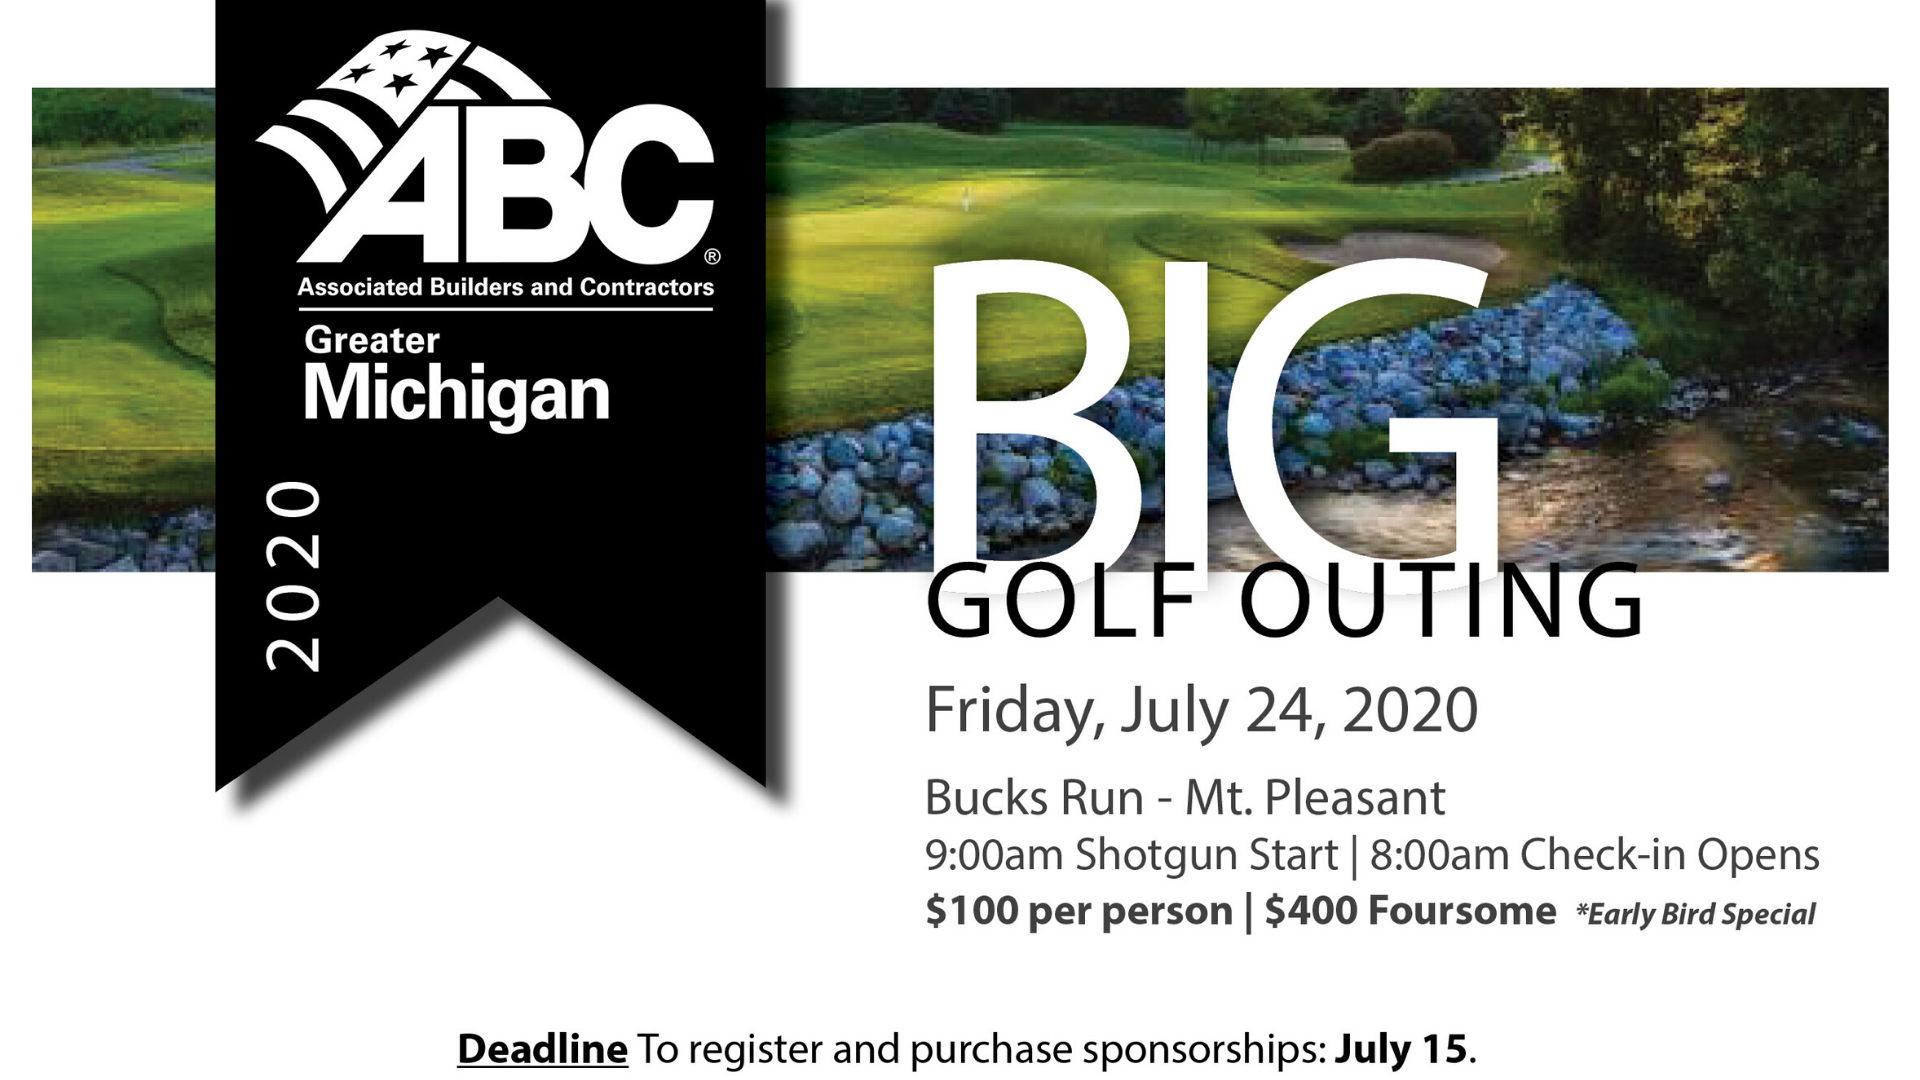 Big gold outing flyer